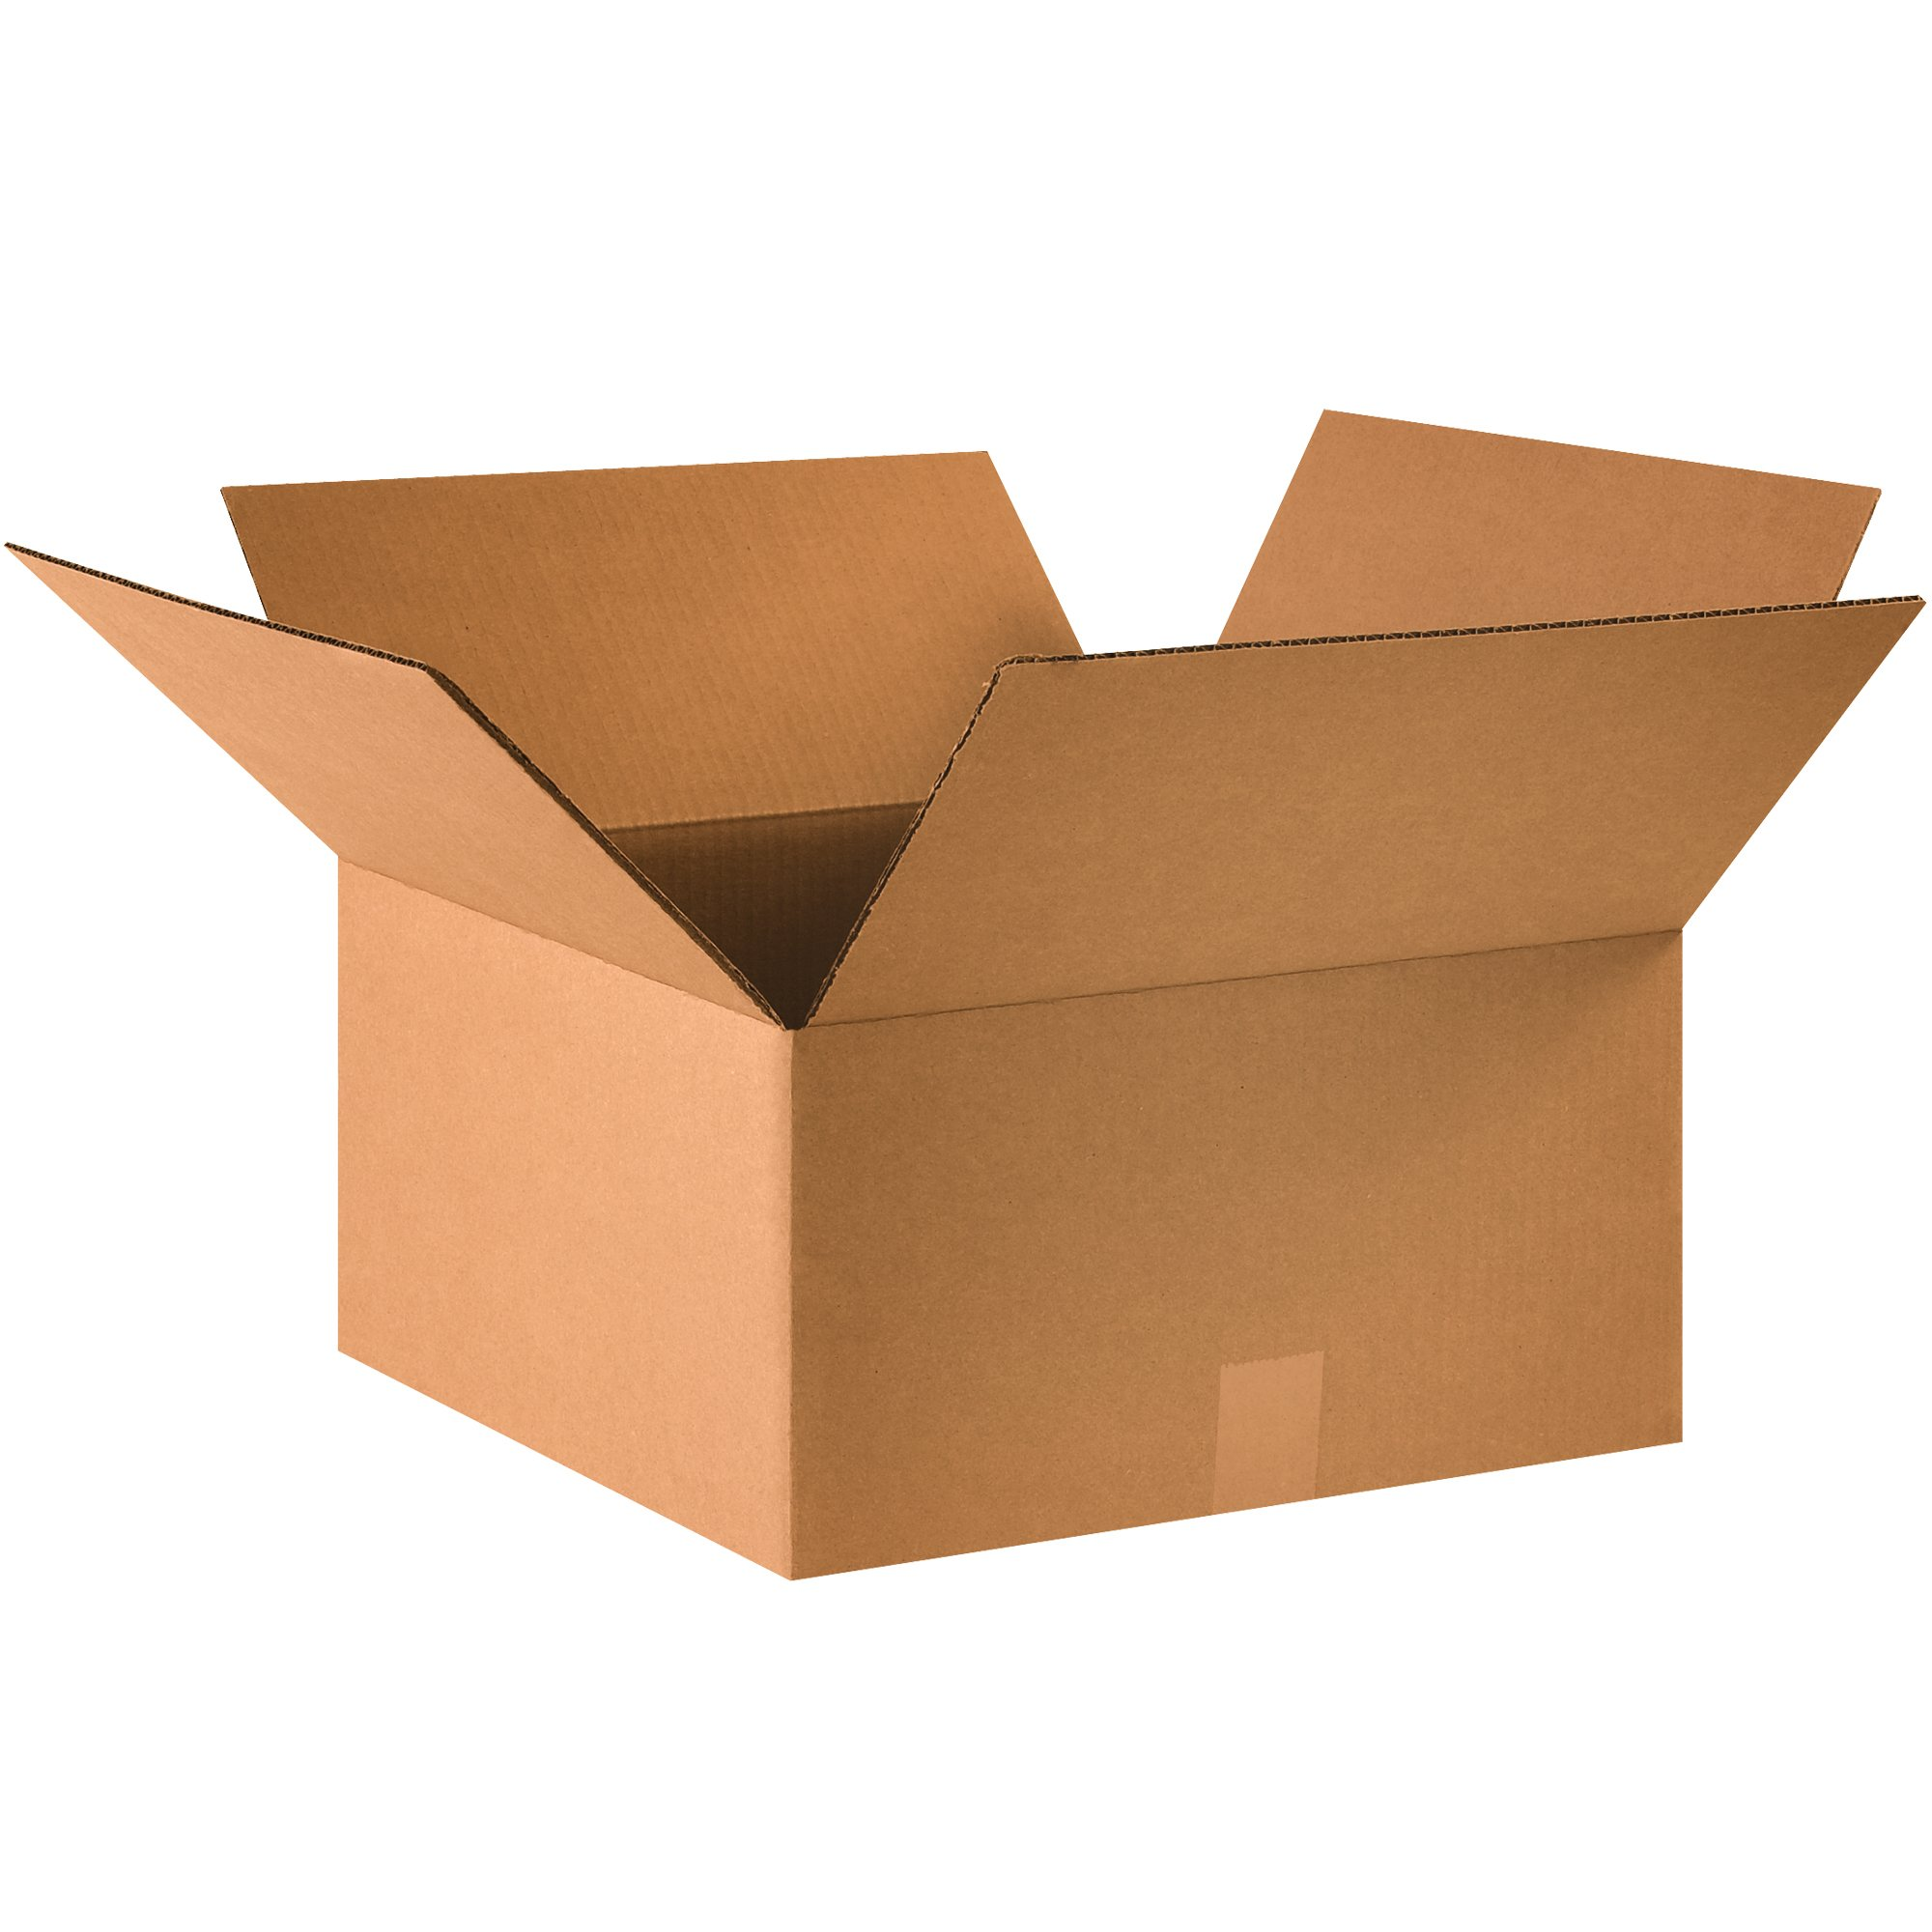 "Boxes Fast BF16168 Cardboard Boxes, 16"" x 16"" x 8"", Single Wall Corrugated, for Packing, Shipping, Moving and Storage, Kraft (Pack of 25)"